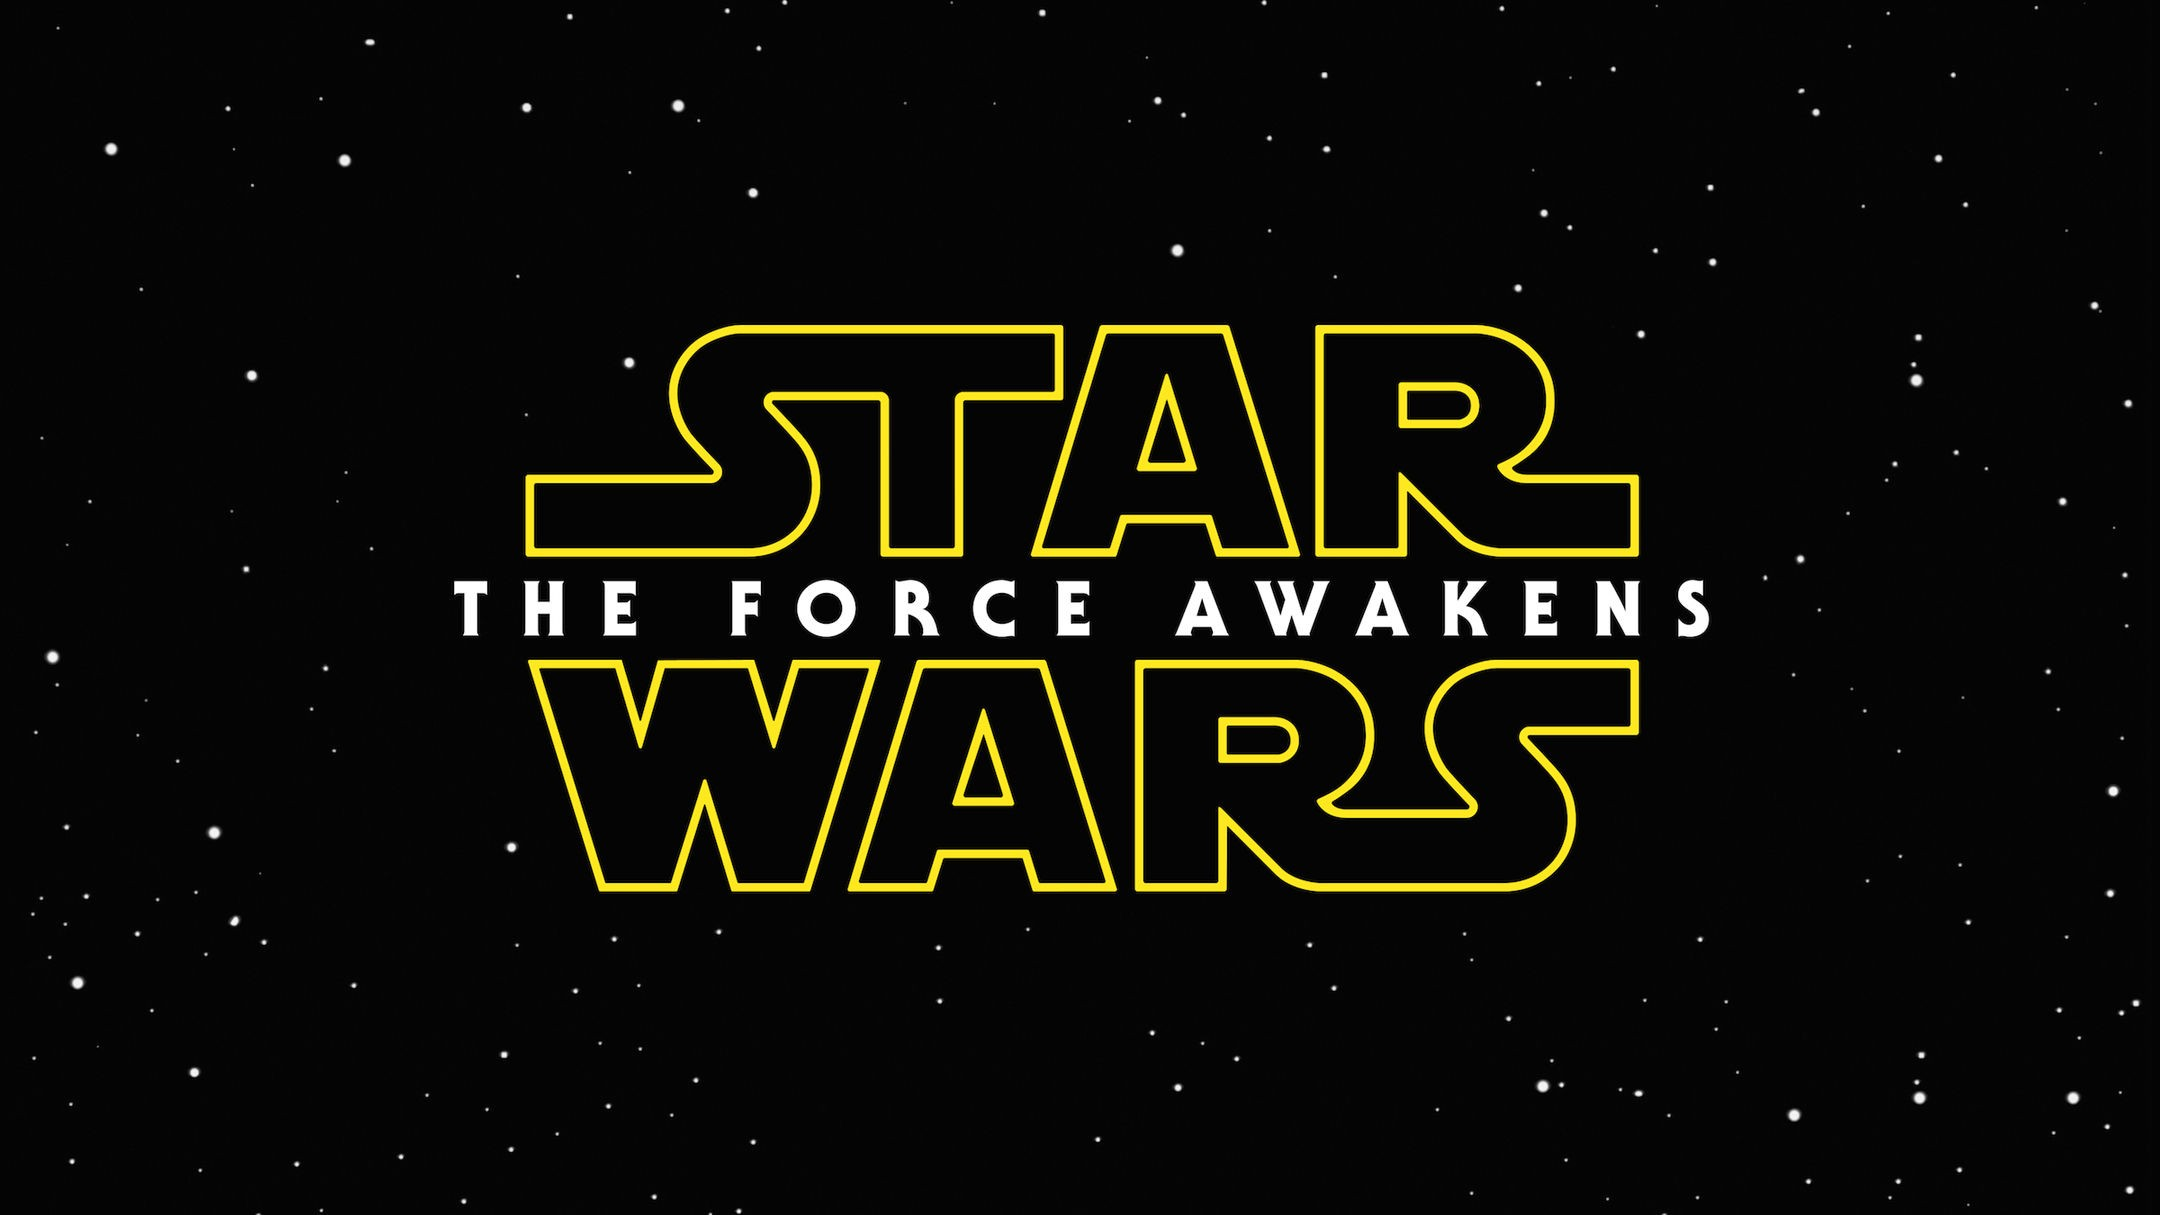 Hey, kijk! Het is de nieuwe trailer voor Star Wars: The Force Awakens